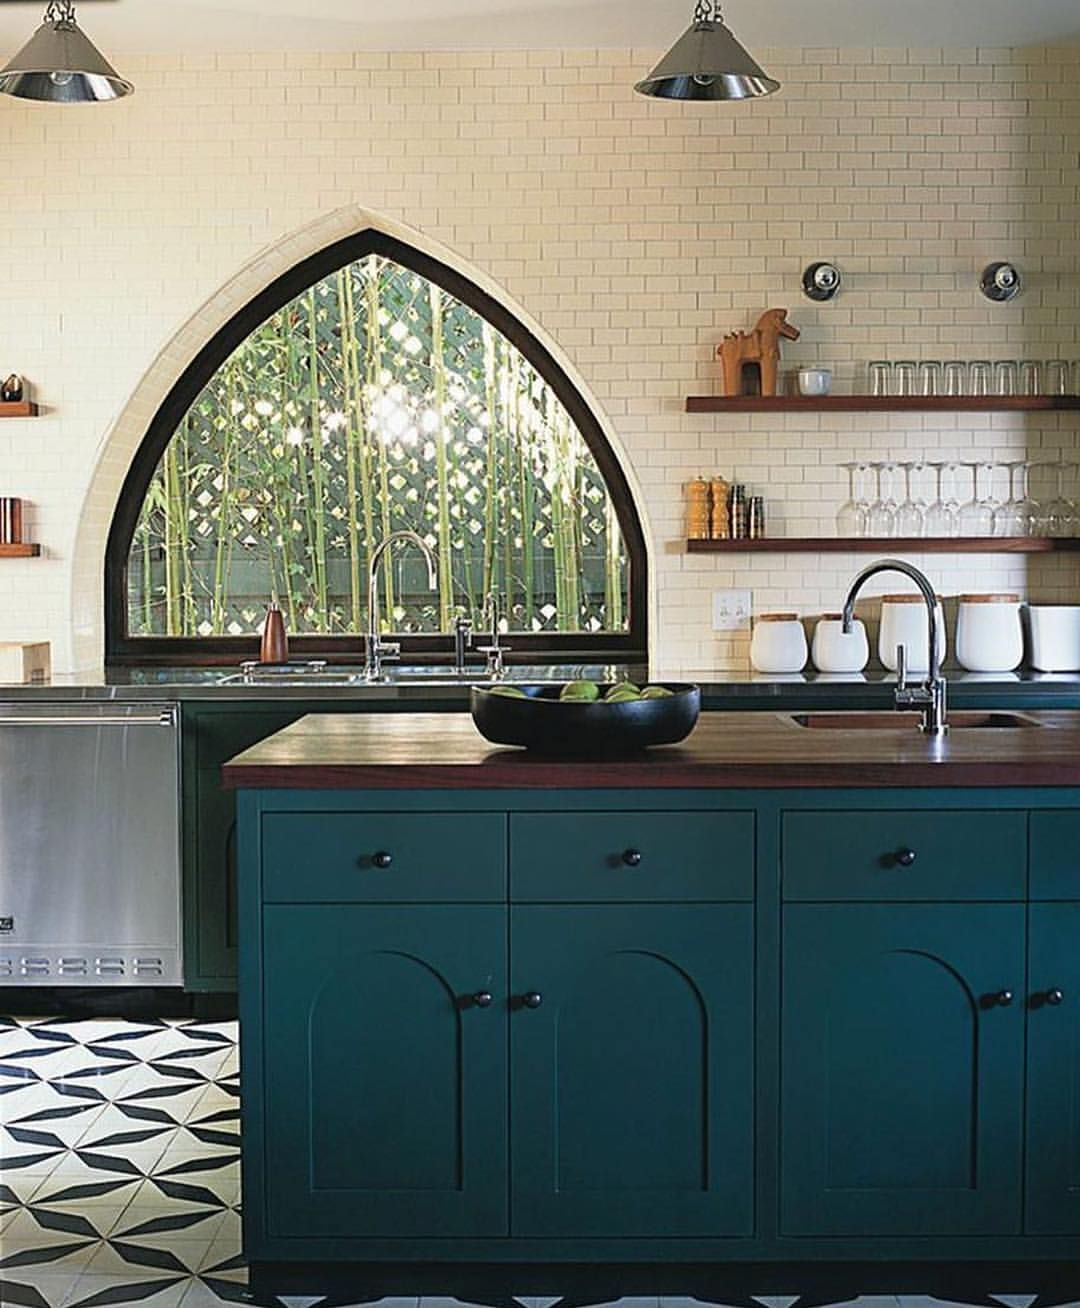 Studio Shamshiri Sur Instagram The Catalina Kitchen Is Now More Than A Decade Old One Of The First Kitchens We Di Teal Kitchen Kitchen Remodel Kitchen Decor